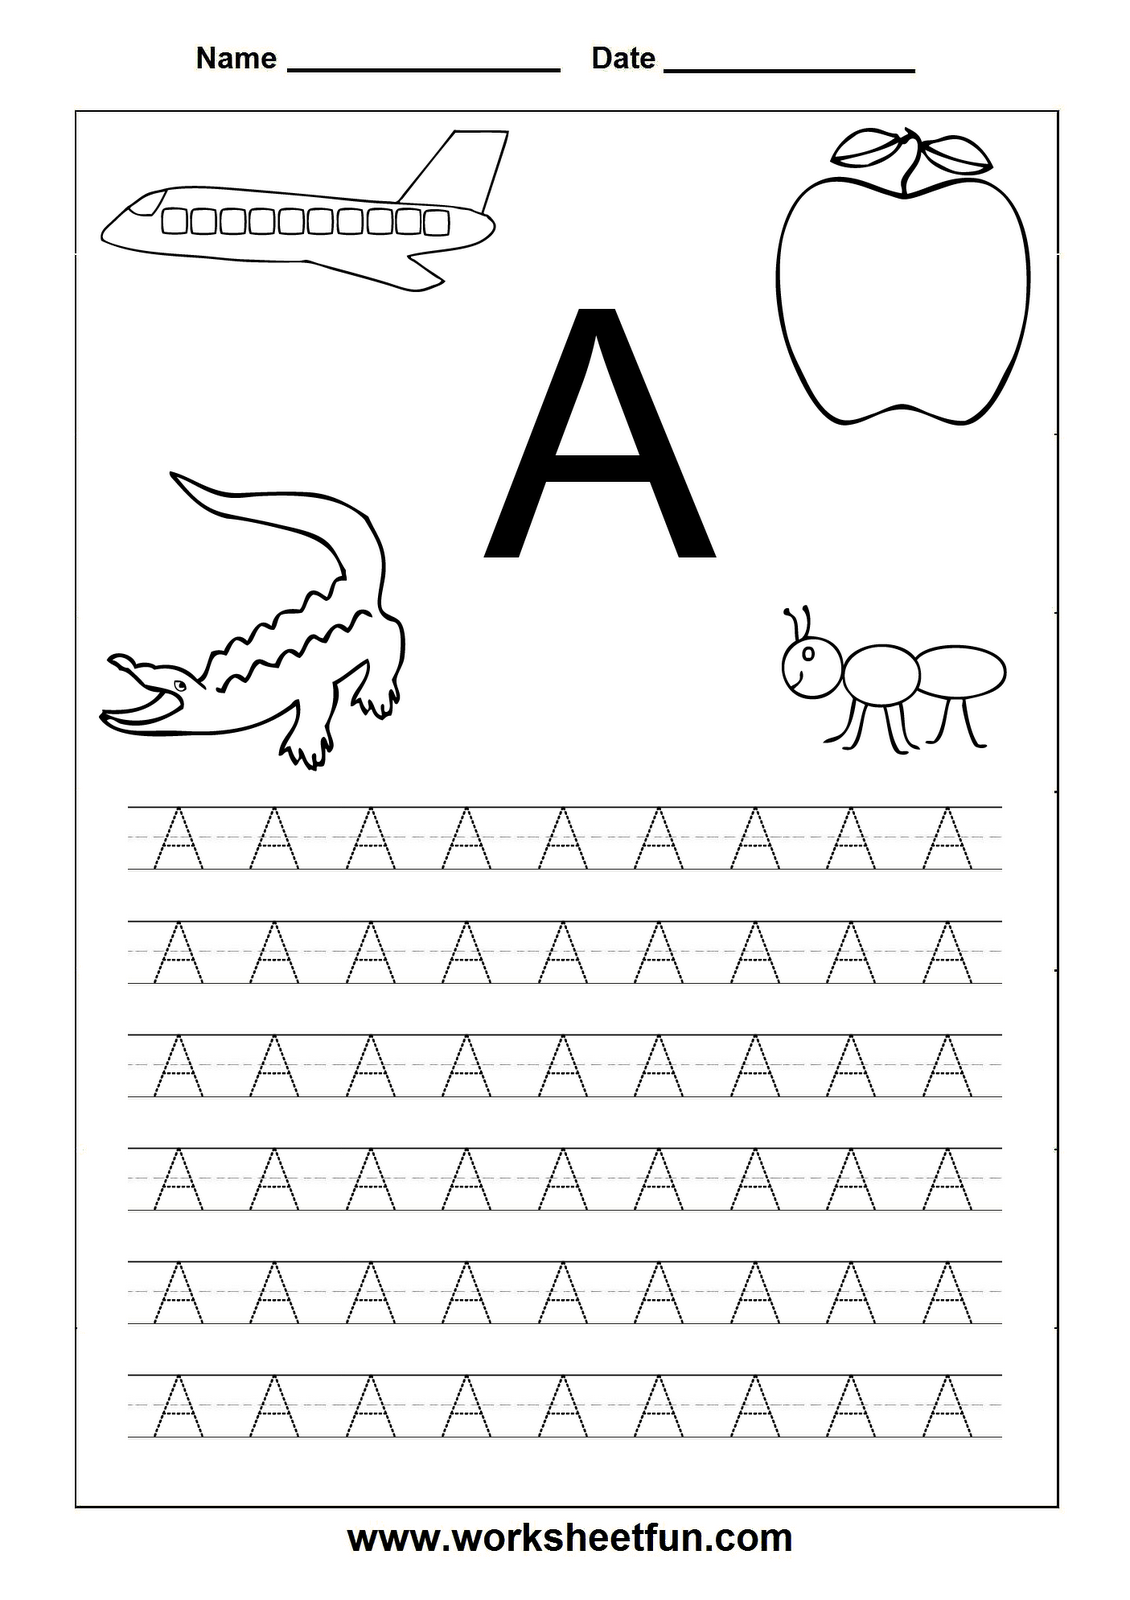 Worksheets Letter Tracing Worksheets letter worksheets for kindergarten printable letters pinterest printable